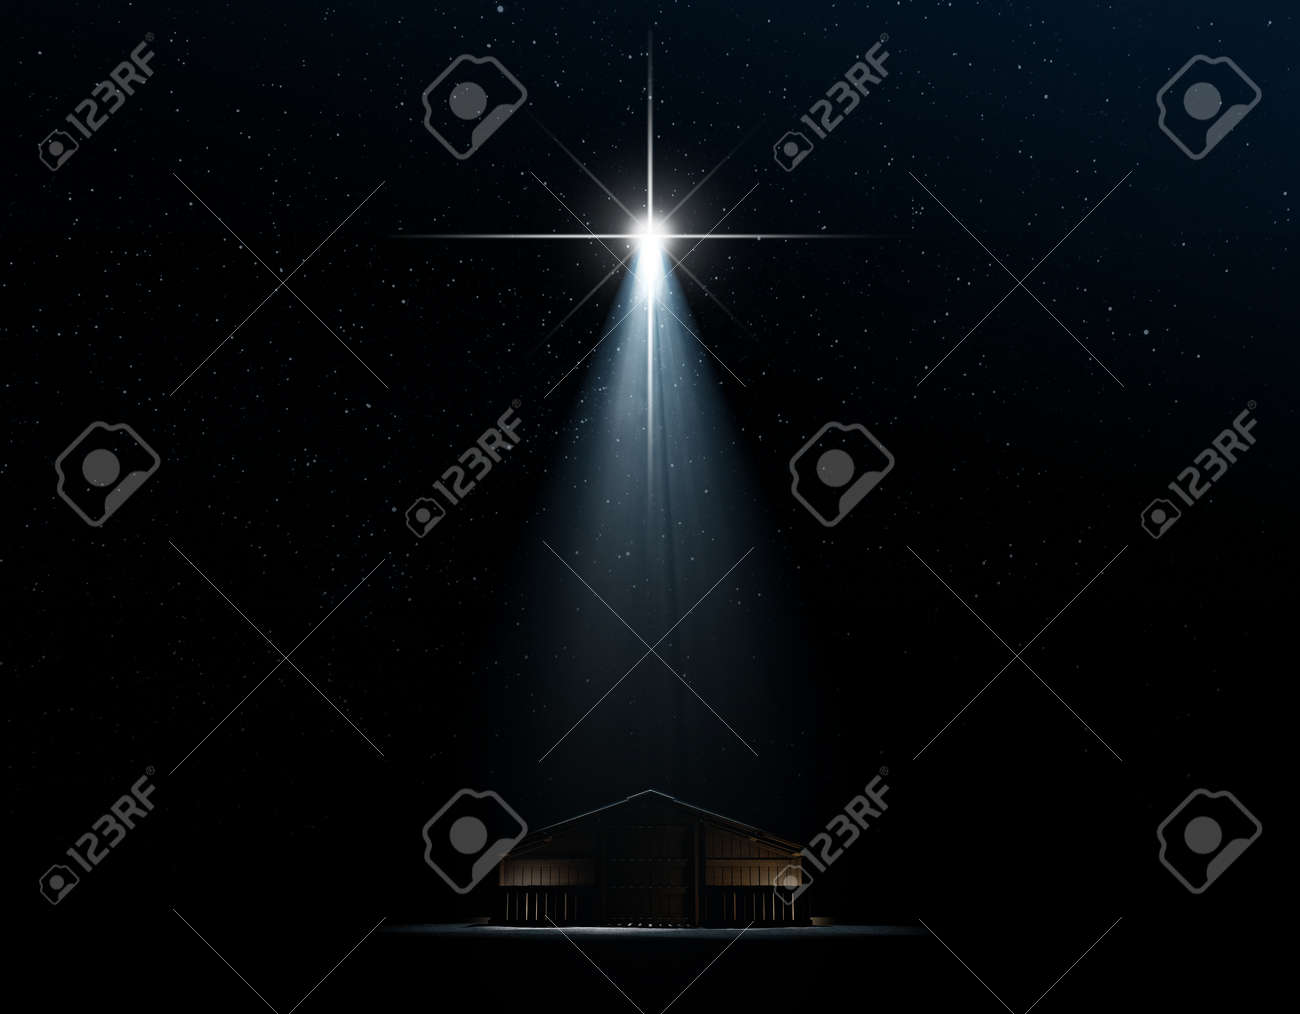 A 3D render of an abstract depiction of the nativity scene of christs birth in bethlehem with an isolated stable being spotlit by a bright star on dark starry night background - 63457225